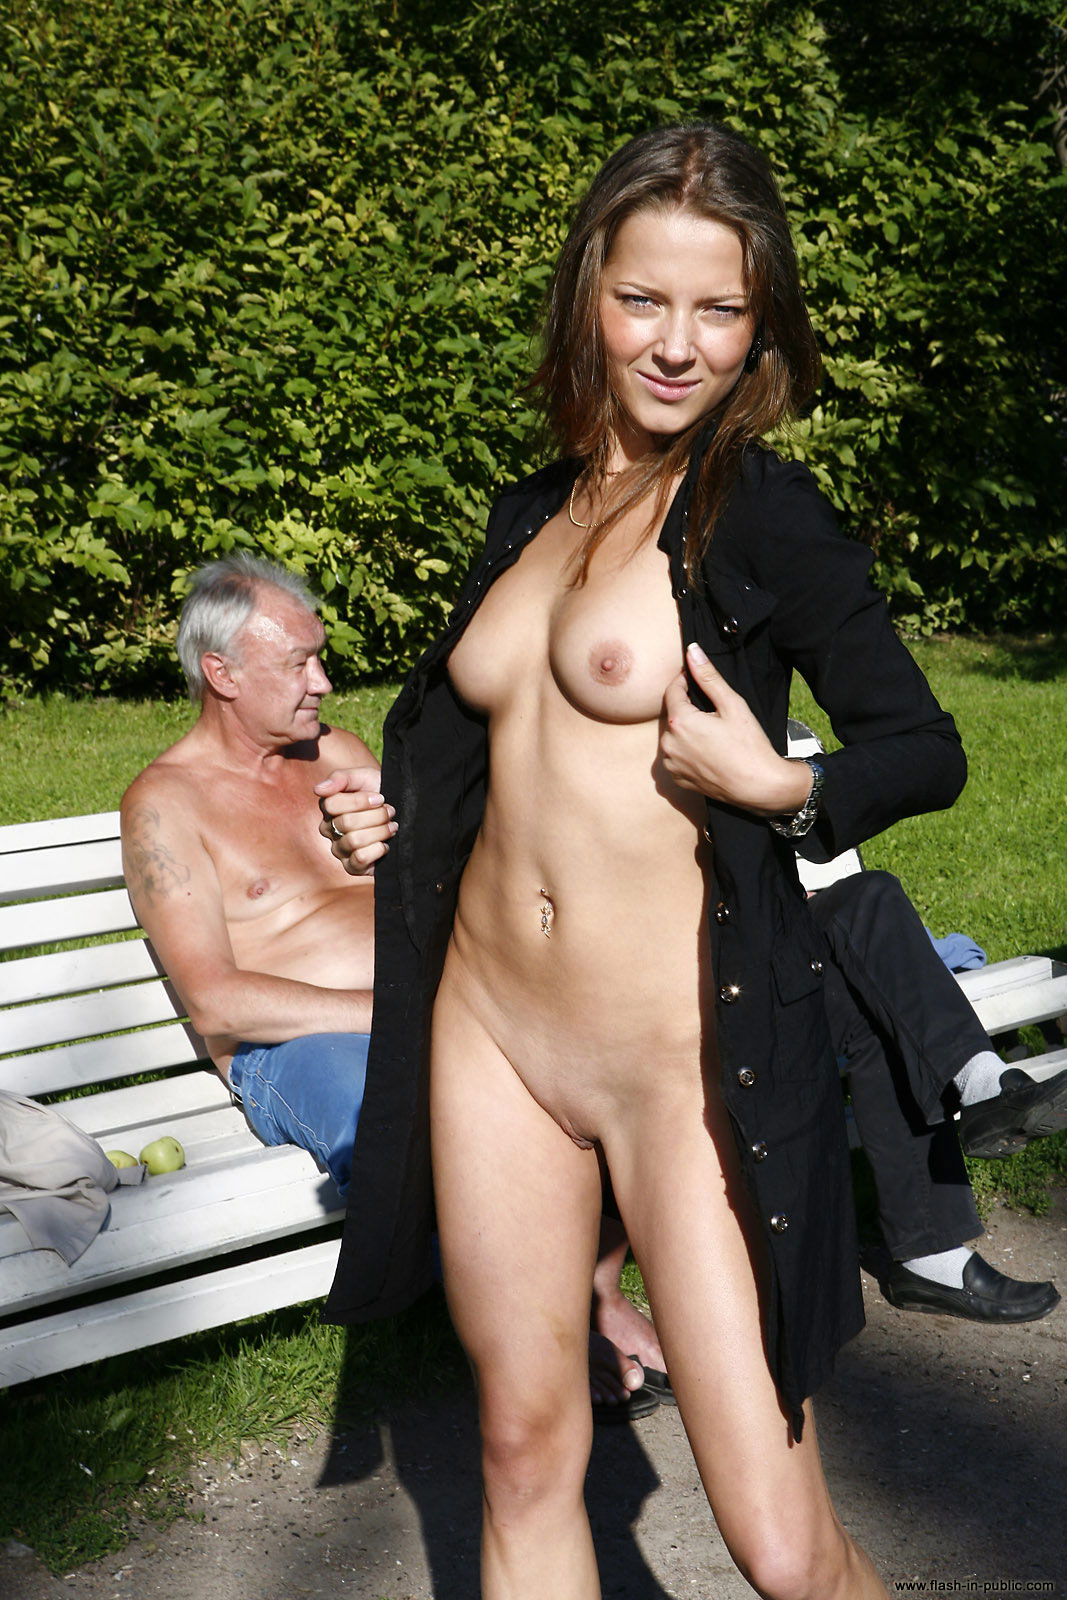 yanina-m-nude-walk-around-the-town-flash-in-public-38